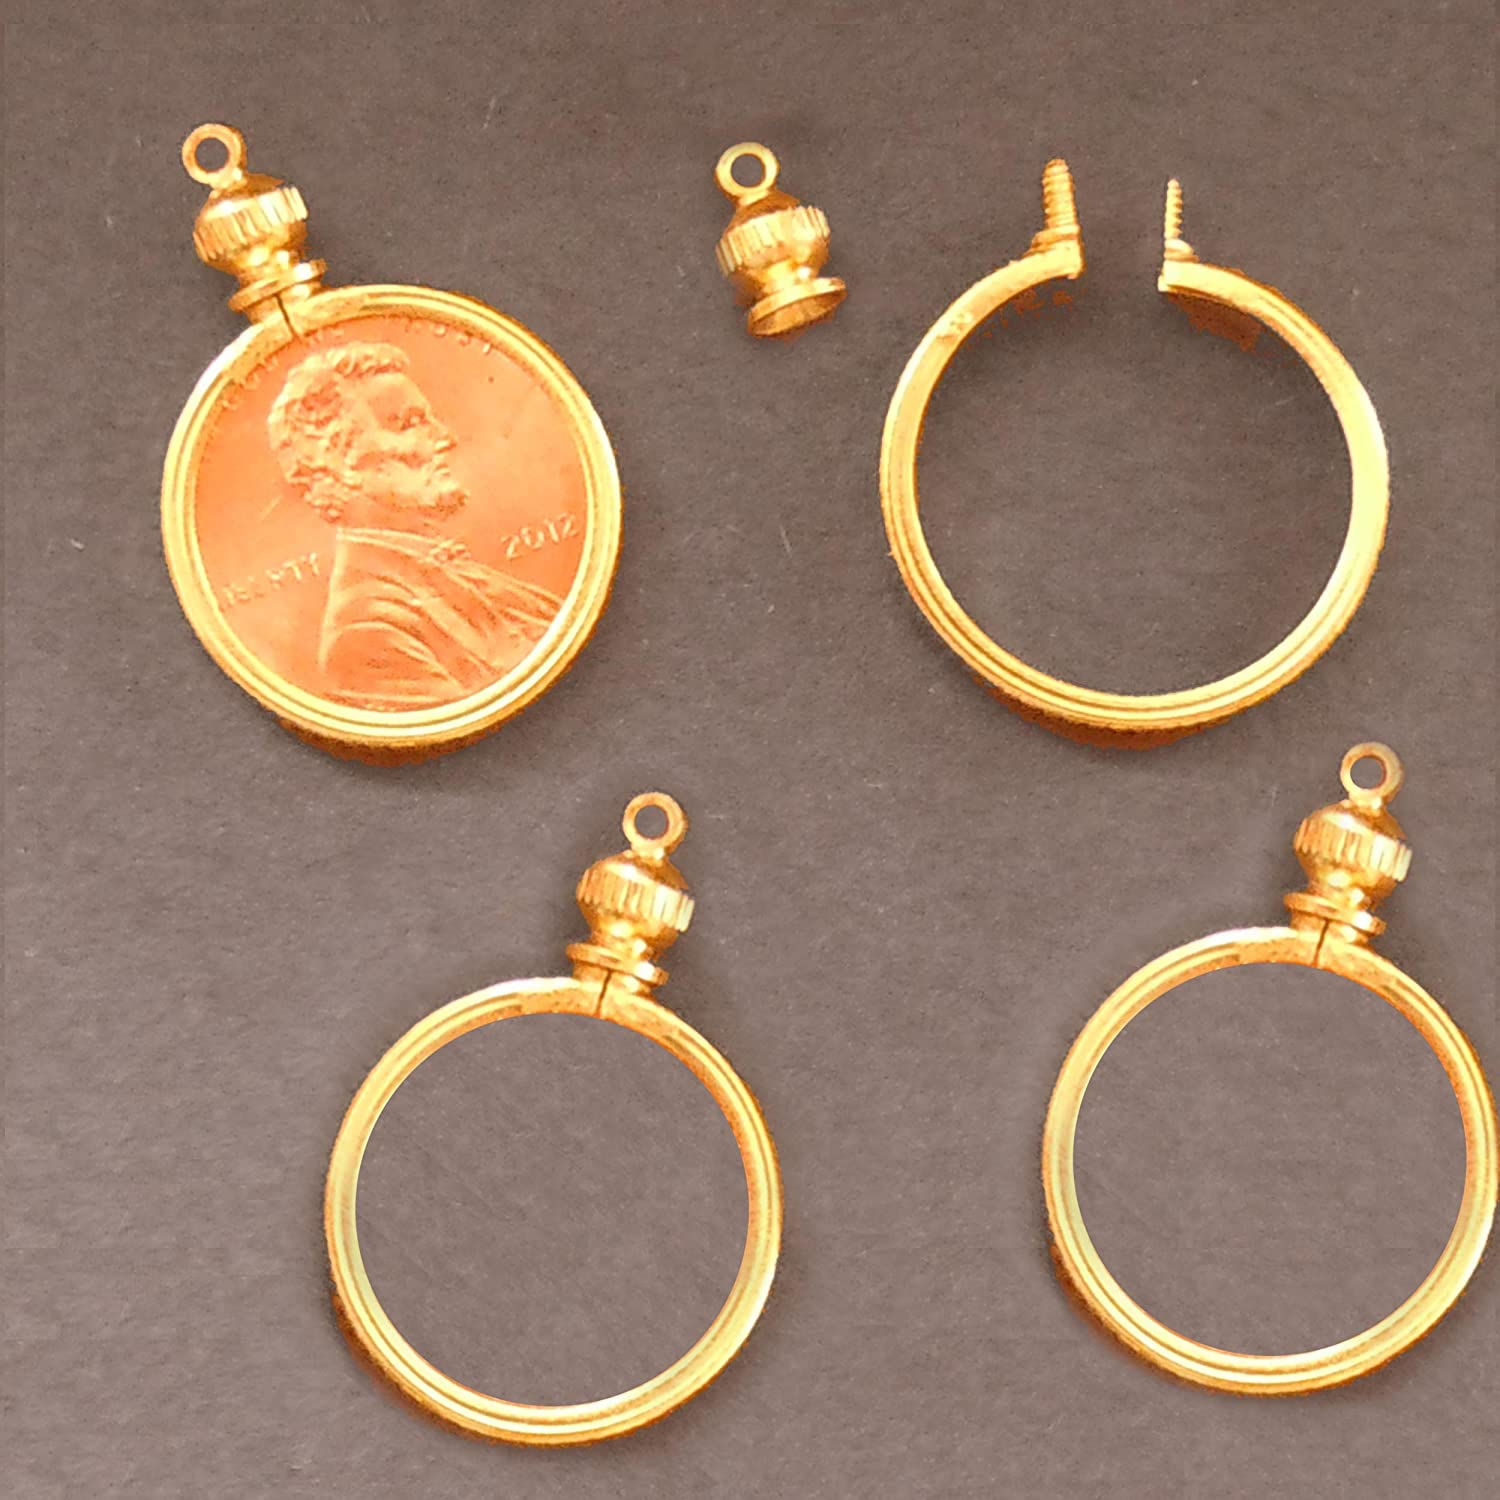 Amazon 1 cent usa penny coin holder bezel gold tone for amazon 1 cent usa penny coin holder bezel gold tone for charm necklace pendant display pack of 4 toys games aloadofball Images